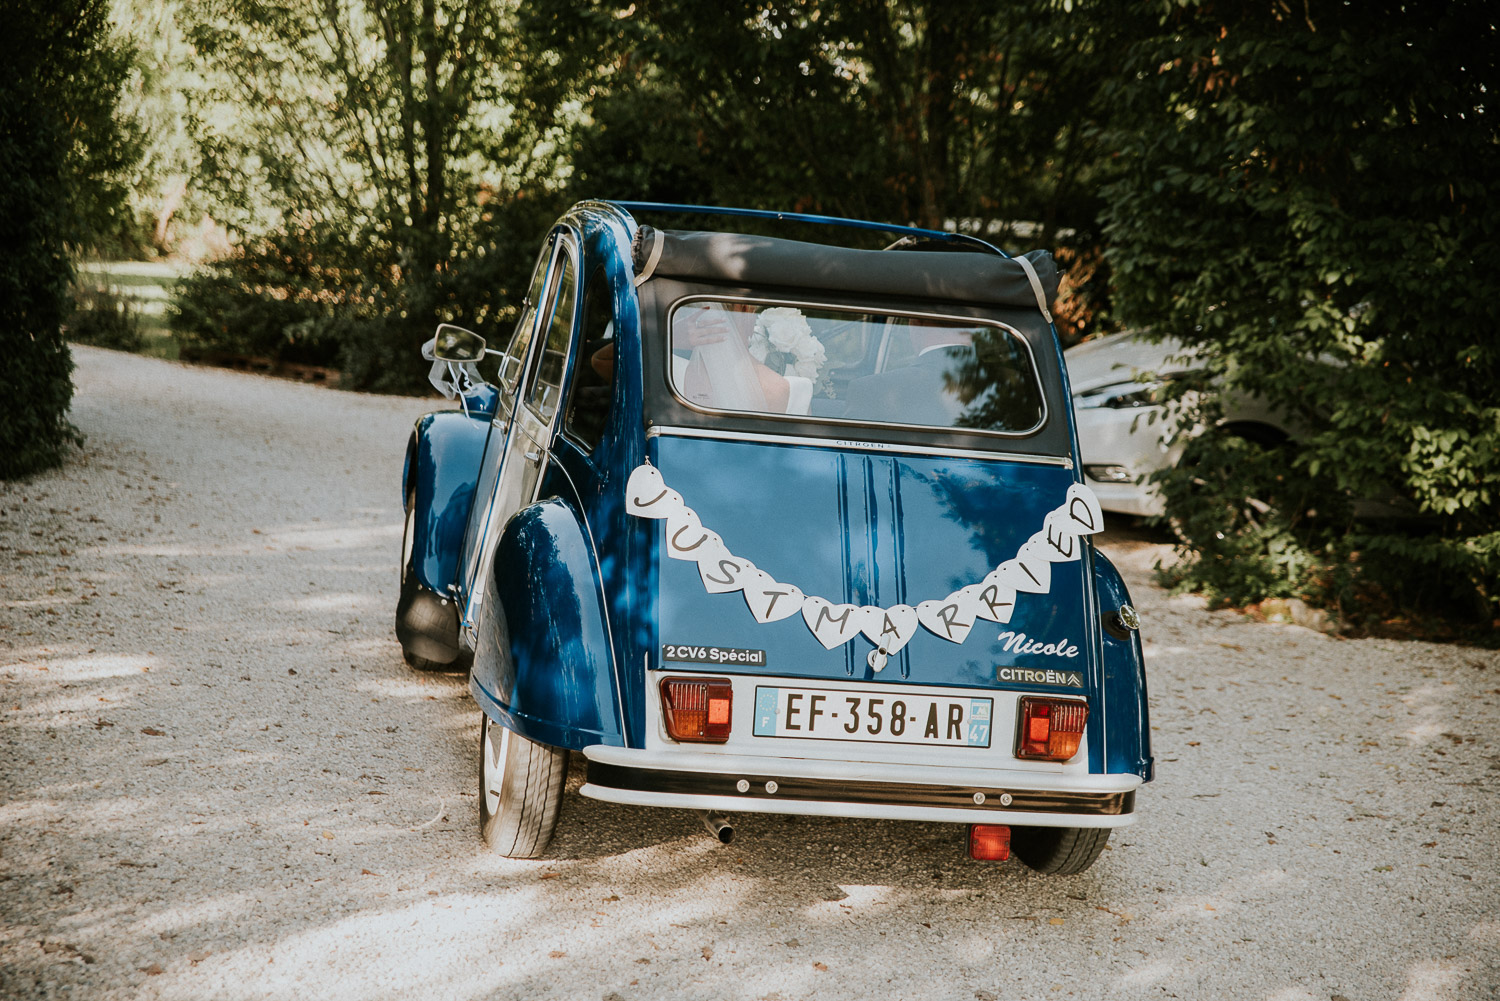 dordogne_eymet_wedding_france_katy_webb_photography_france_UK75